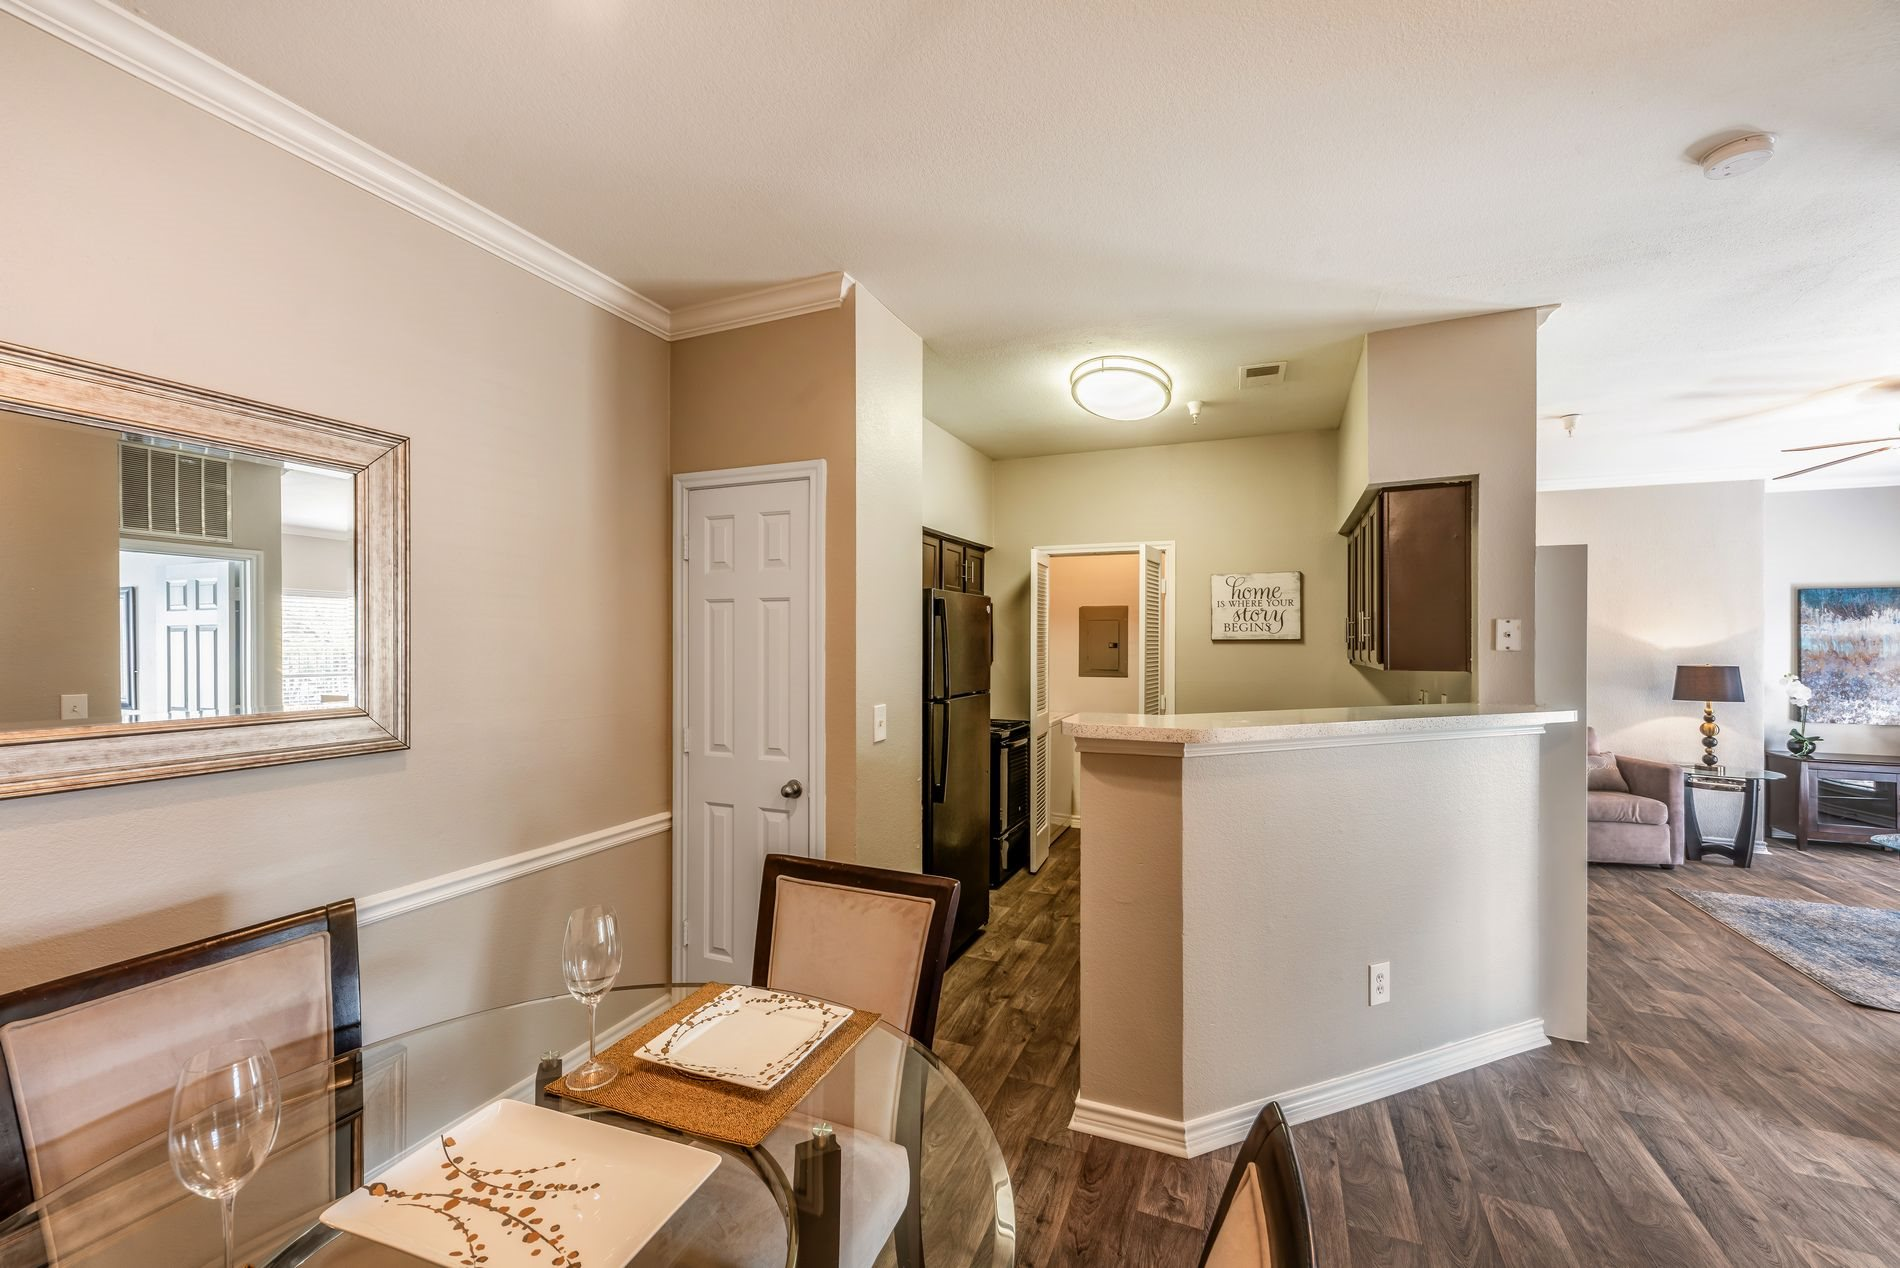 Stylish Interiors at Station 3700 Apartment Homes in Euless, Texas